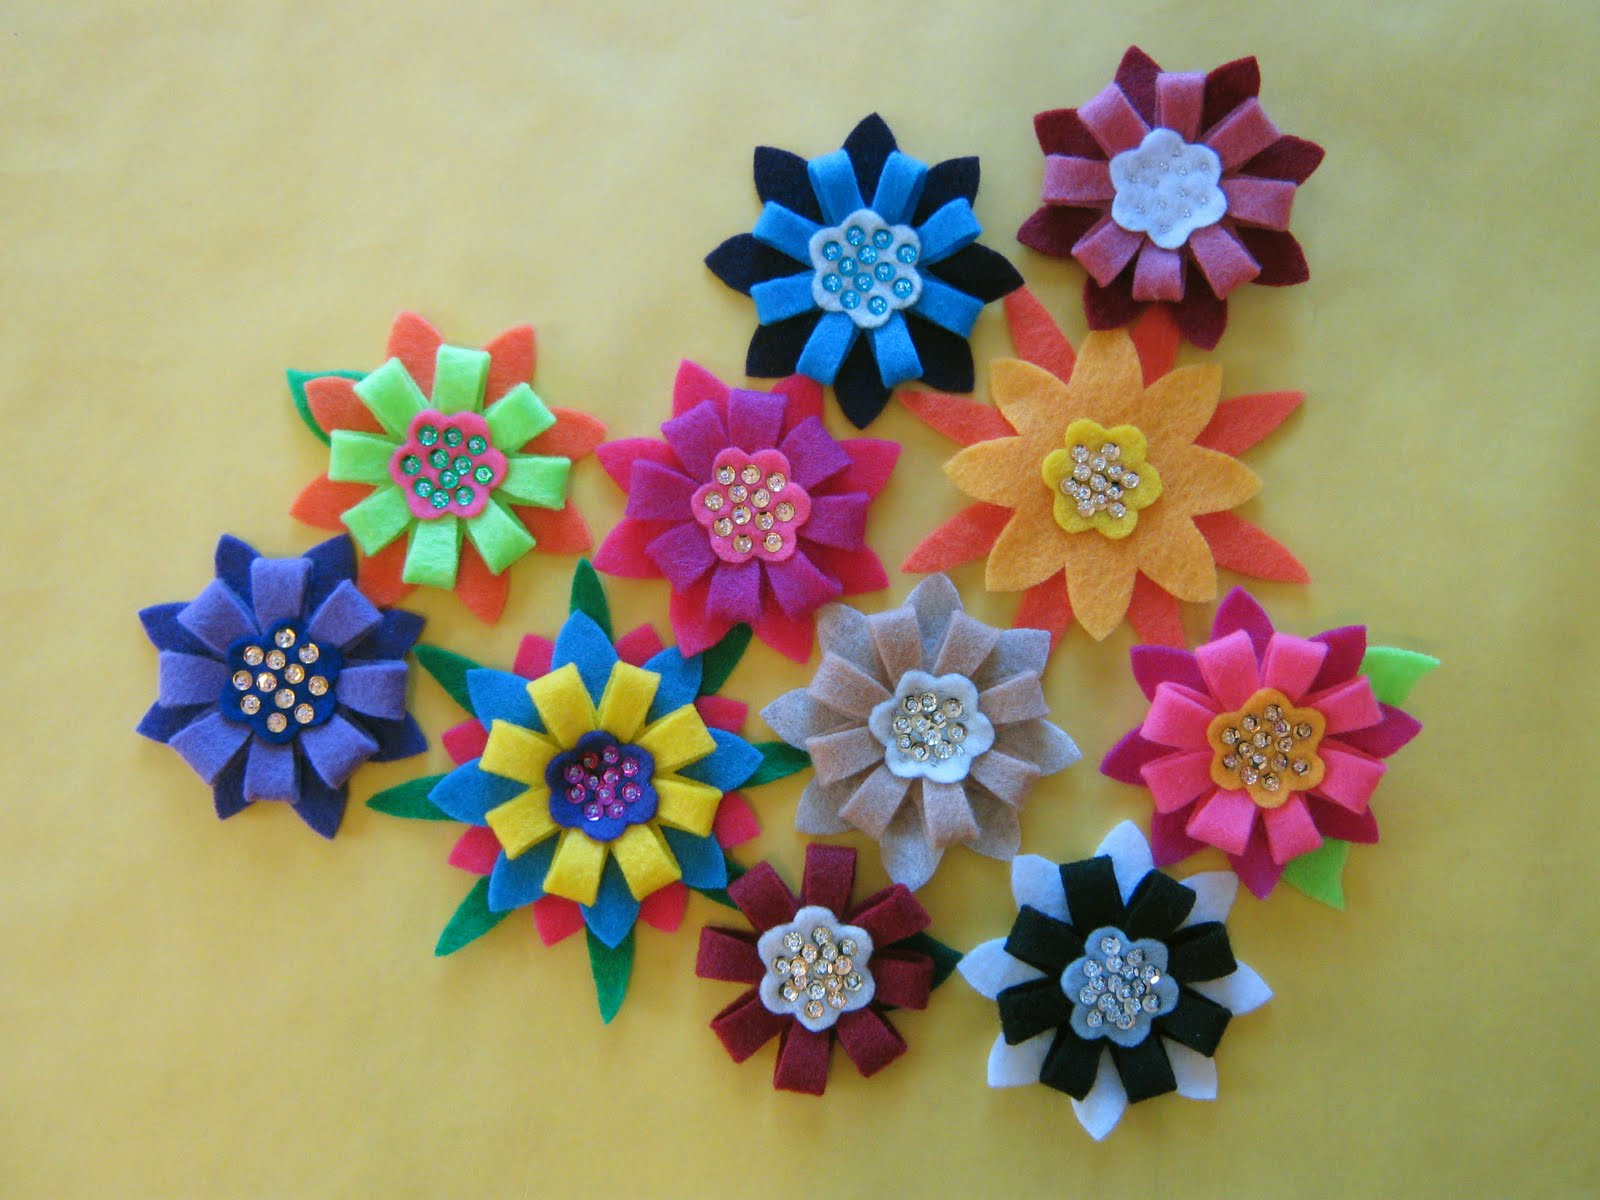 5 daughters Retro felt flowers